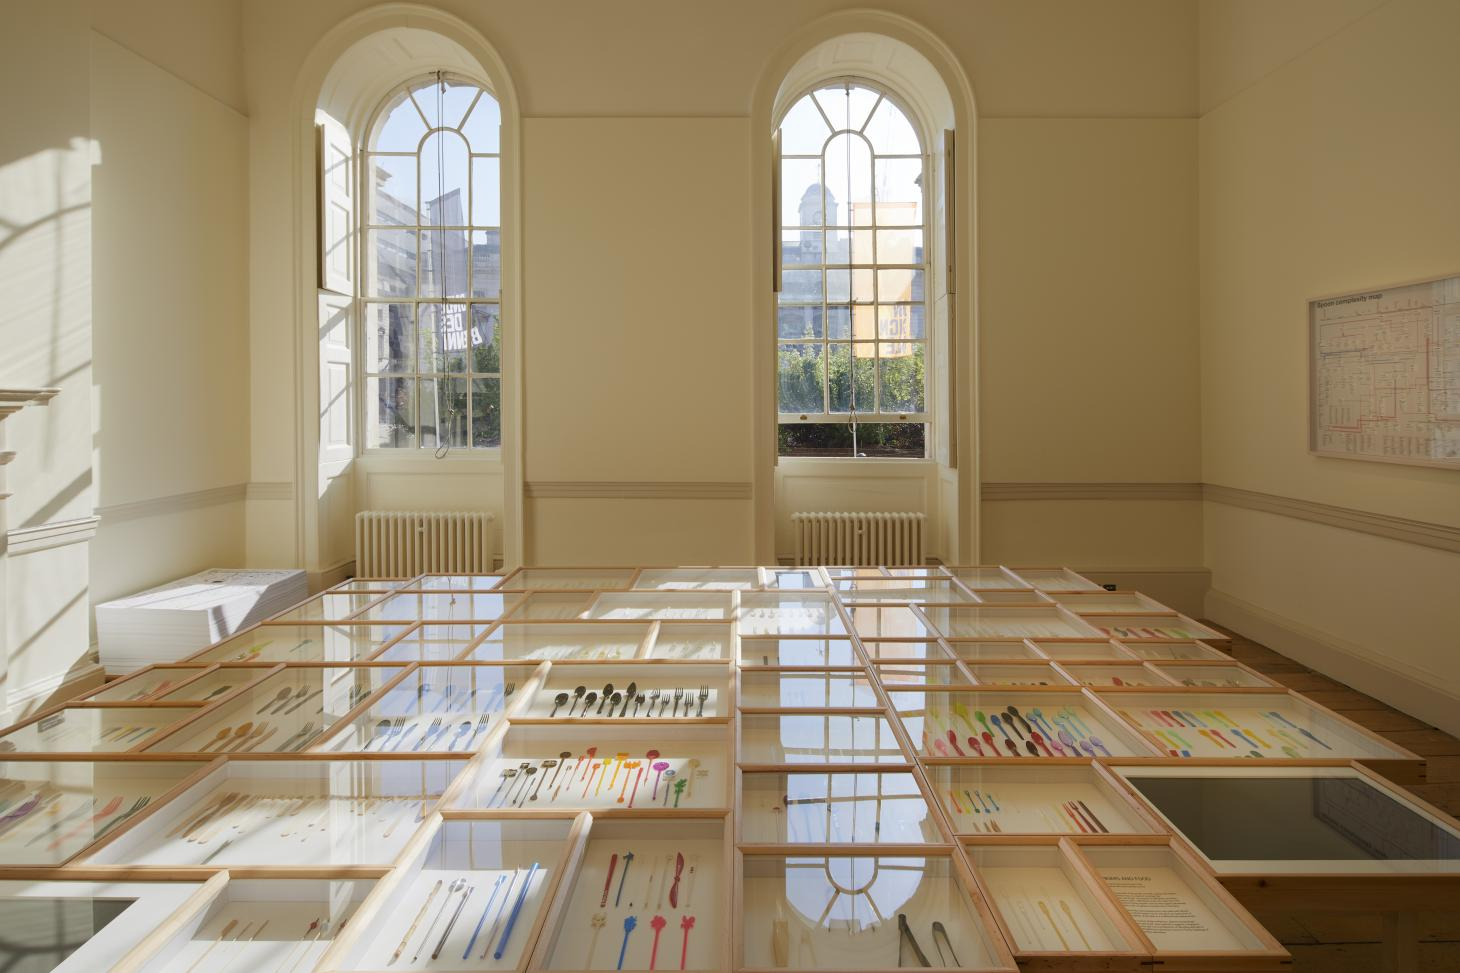 A room with arched windows in Somerset House, with installation of colourful plastic spoons in wooden and glass cases as part of the German Pavilion at London Design Biennale